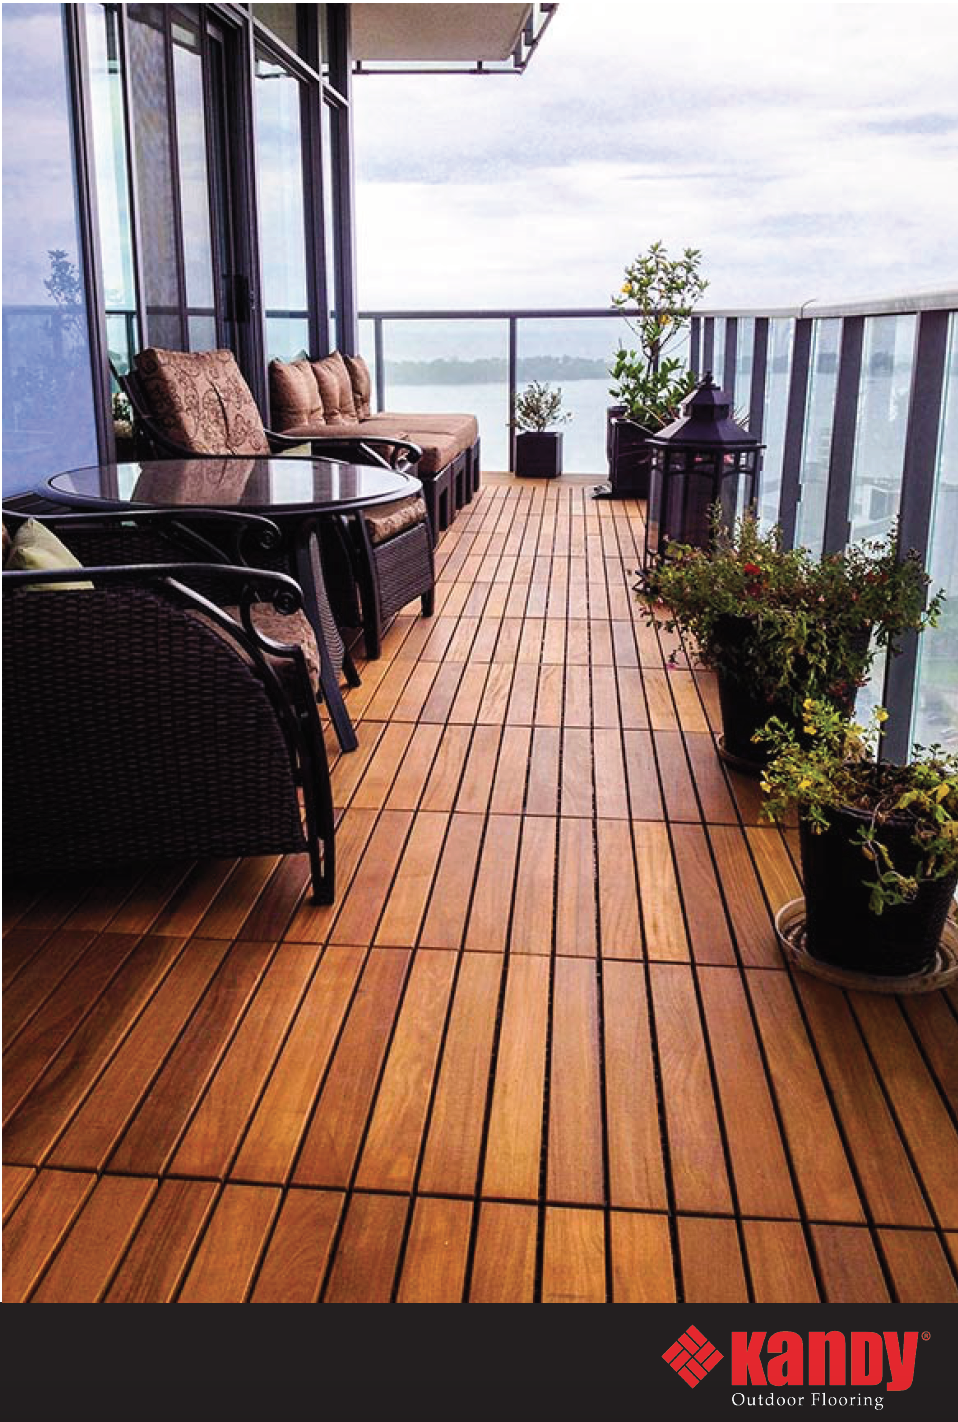 Kandy S Finest Hardwoods Interlocking Floating Tiles Are